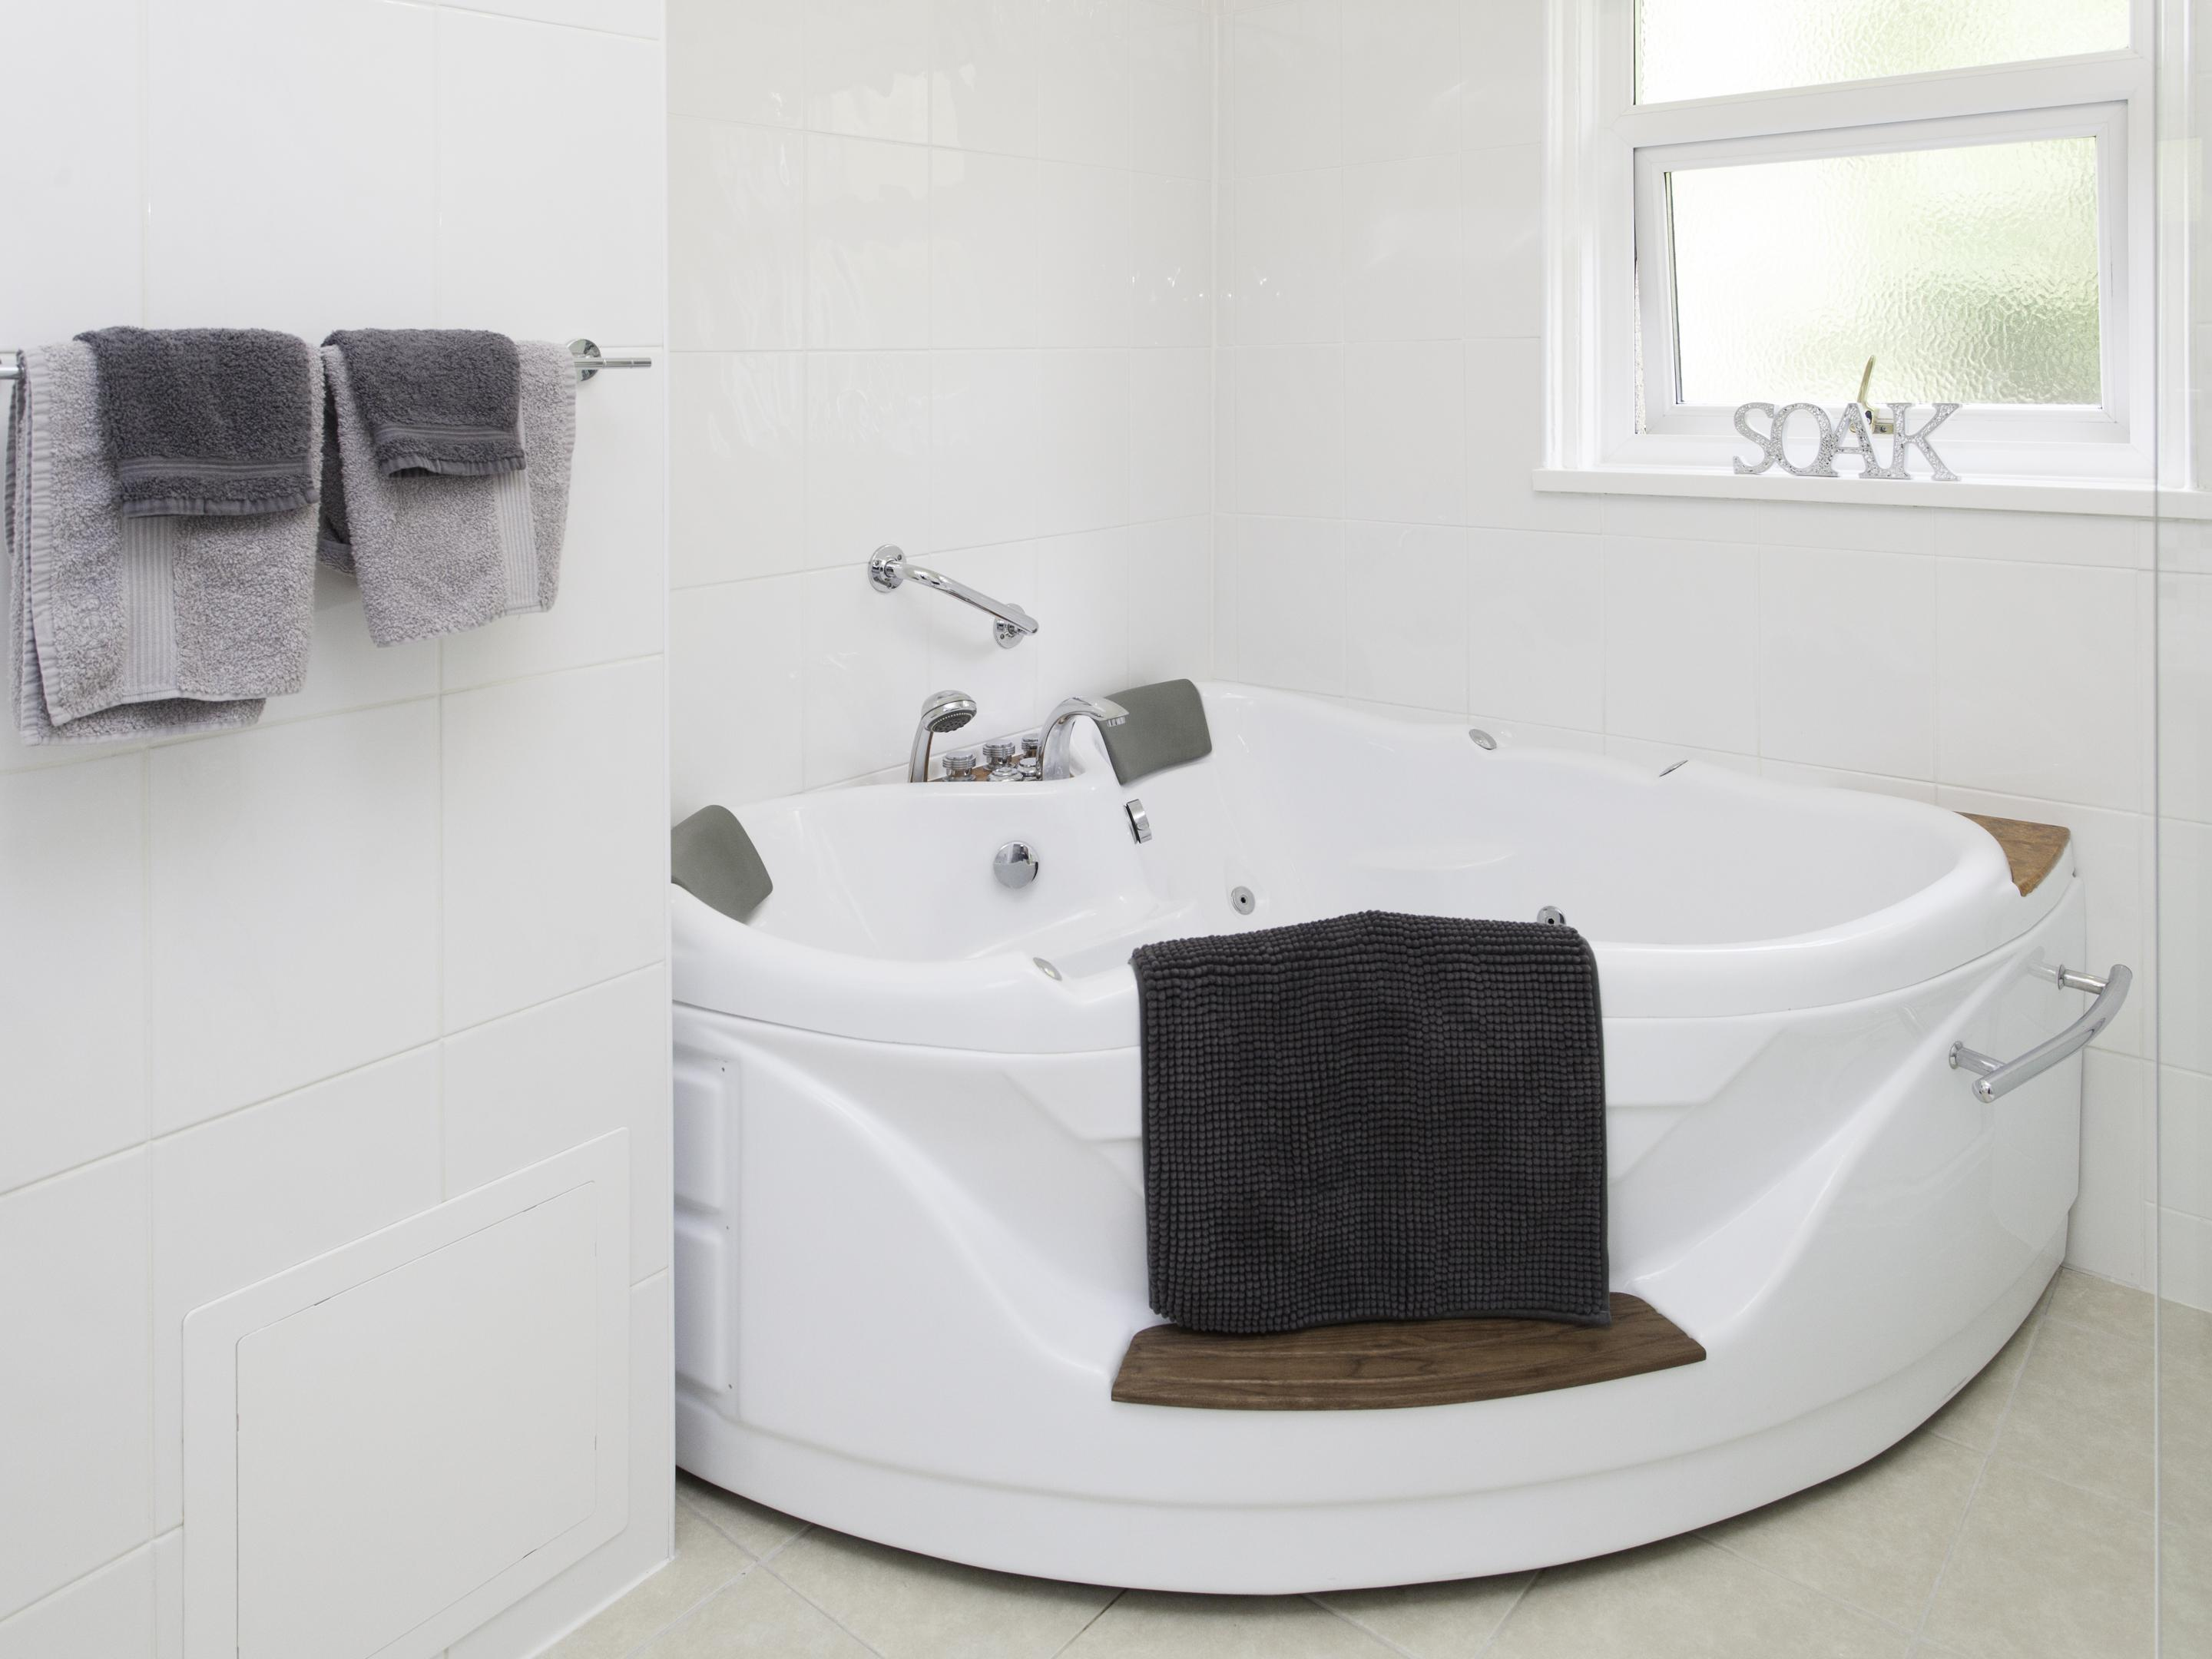 King-Suite-Ensuite with Bath-WhirlPool Bath/Shower